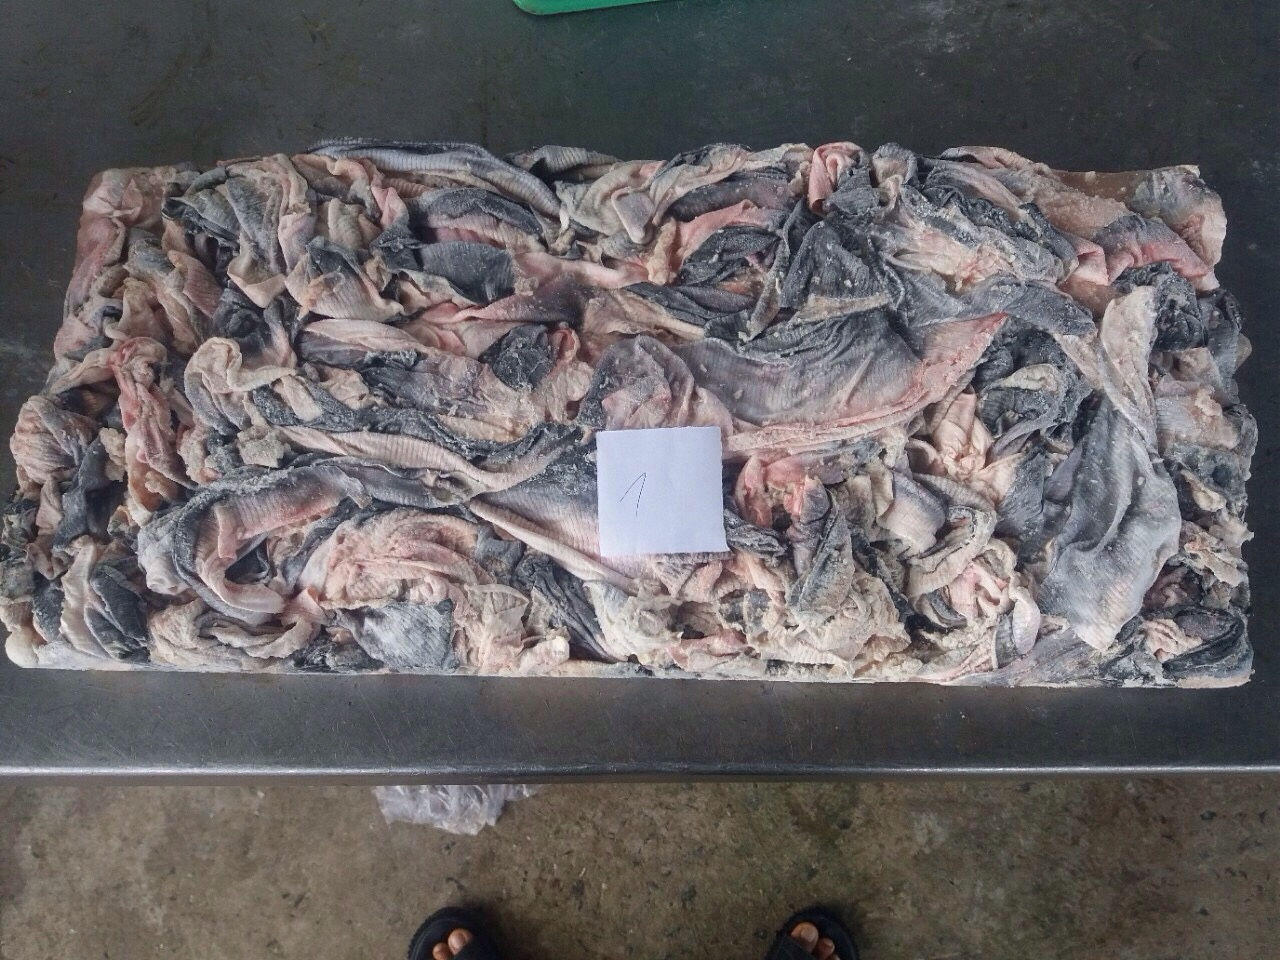 Frozen Basa Fish Skin,Dried Tilapia Scale,All kind of Frozen seafood ,Organic Chemicals,Animal feed & Spices & Grains._9